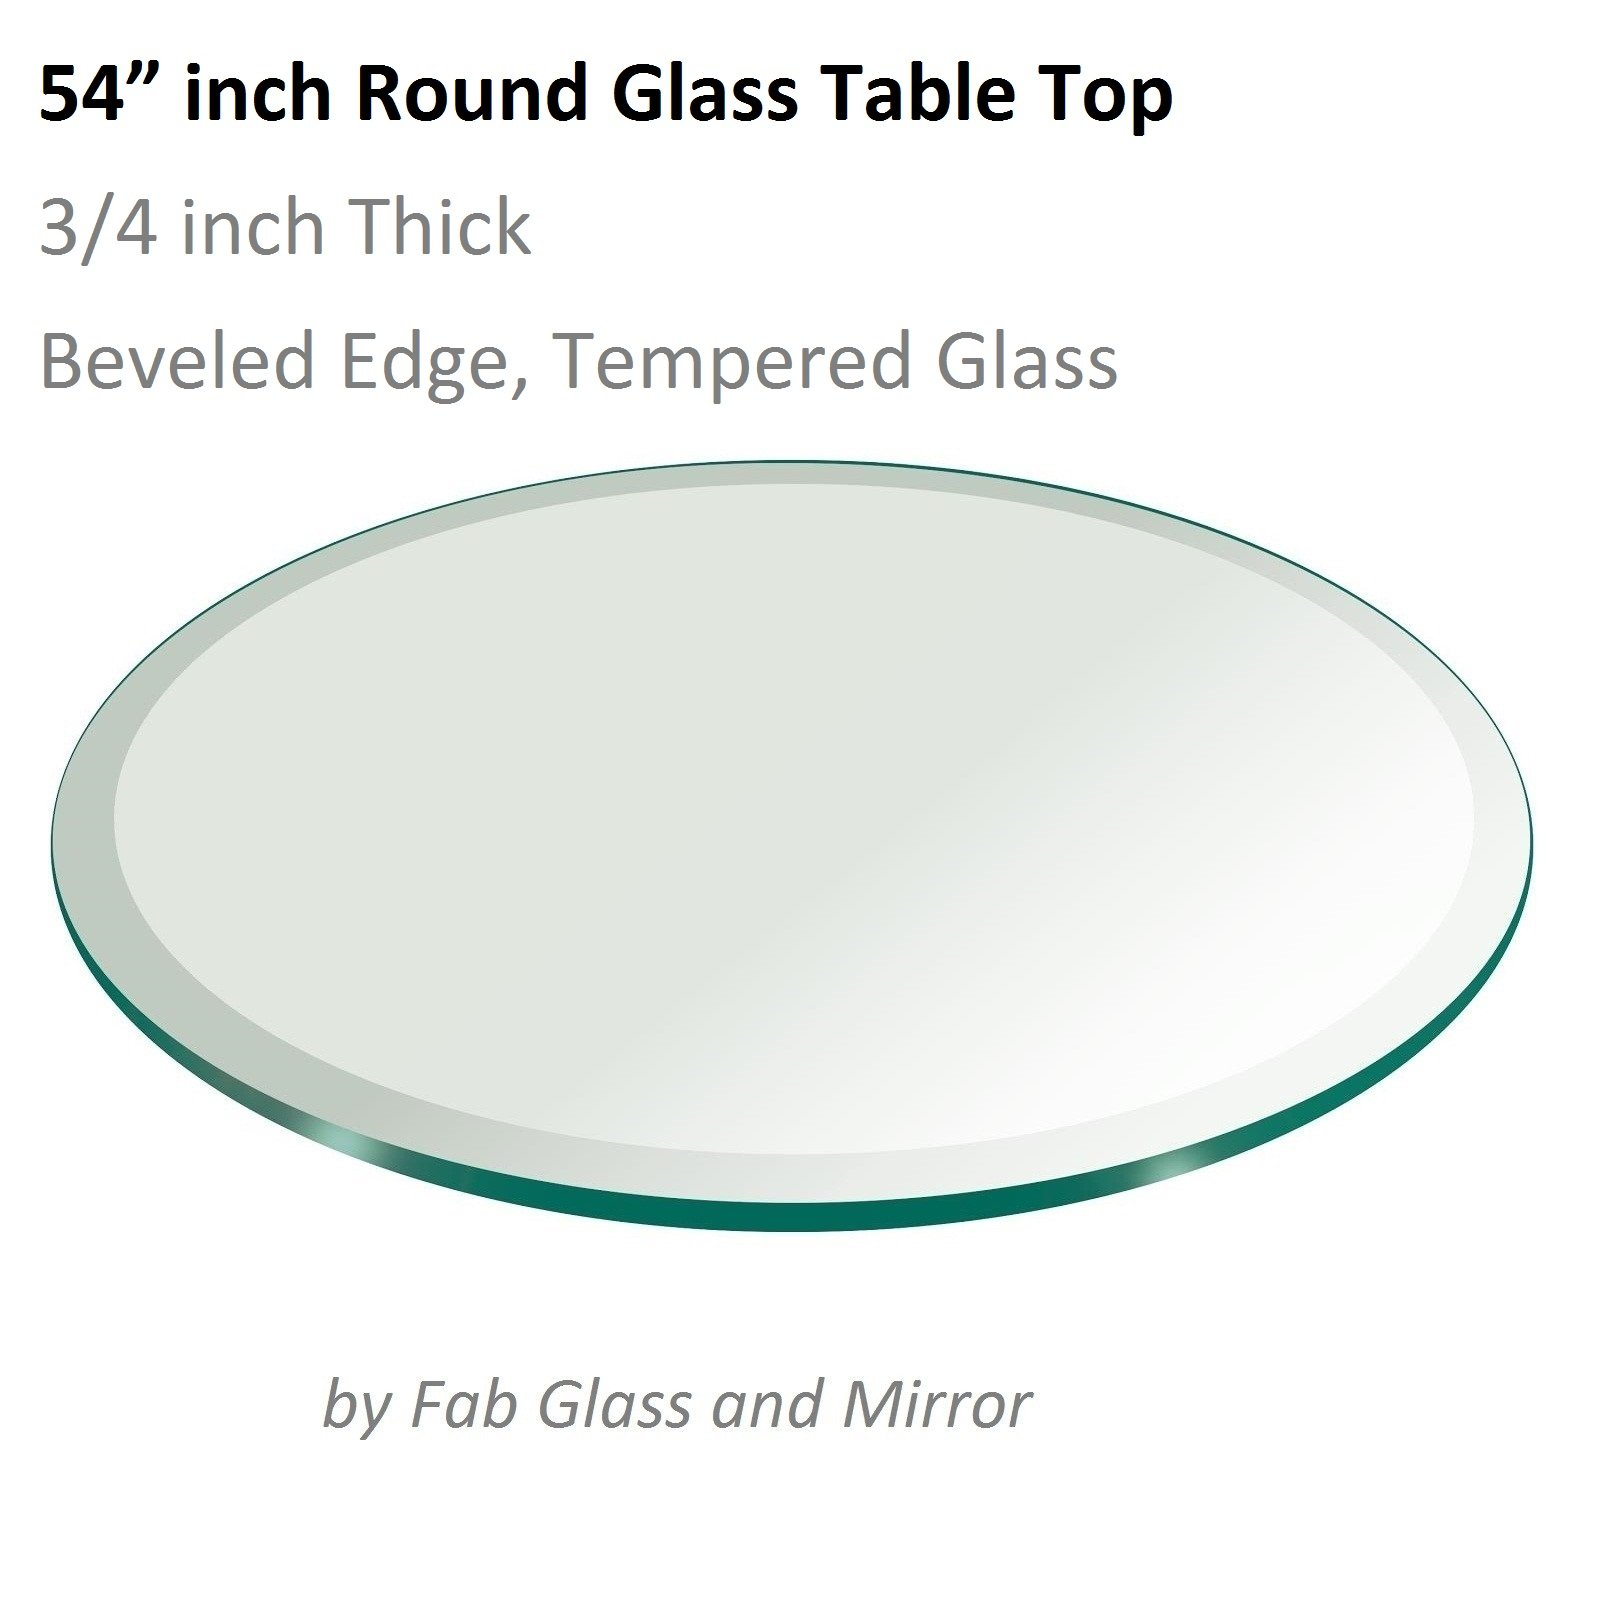 54'' Inch Round Glass Table Top 3/4'' Thick Tempered Beveled Edge by Fab Glass and Mirror by Fab Glass and Mirror